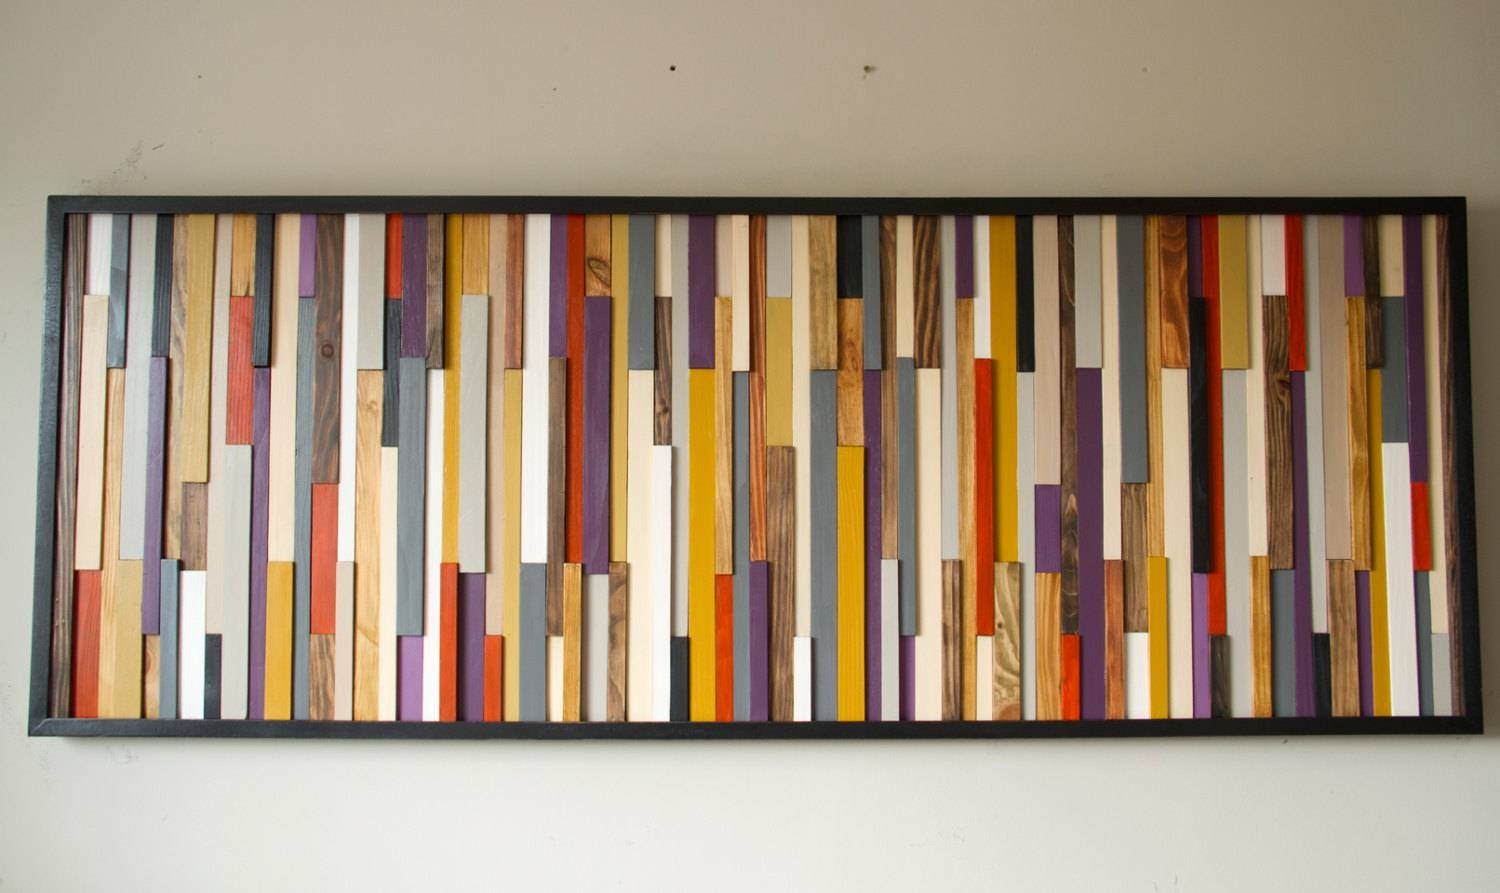 Reclaimed Wood Art, Wall Sculpture 3d Framed, Painted Wood Pieces Throughout Recent Aubergine Wall Art (View 14 of 20)